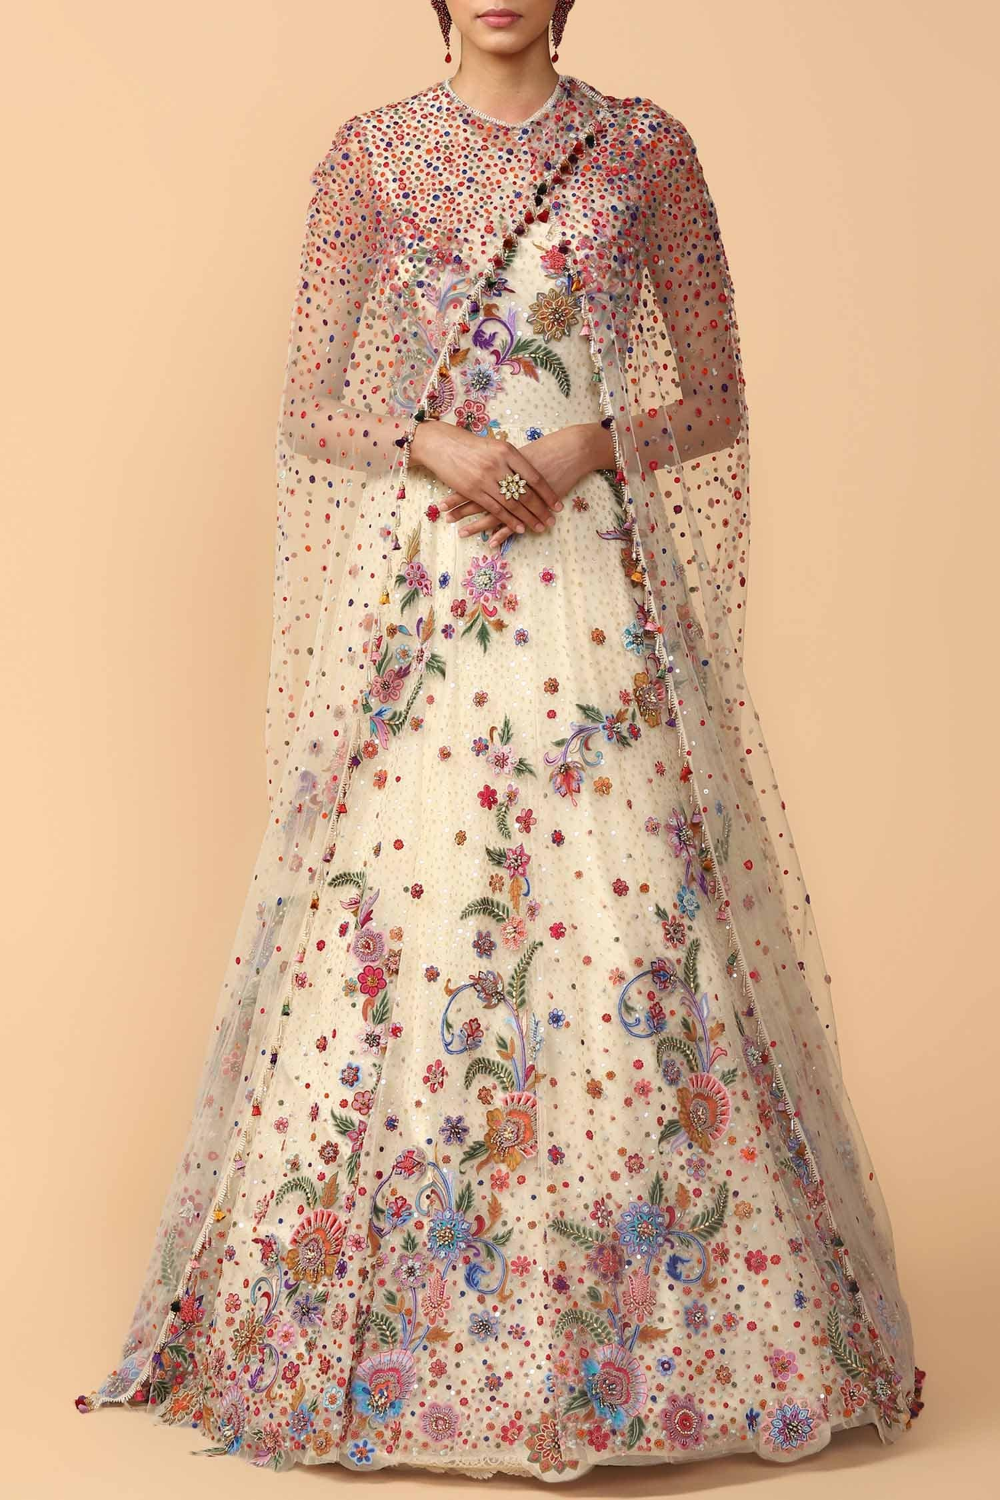 Tarun Tahiliani In 2020 Indian Fashion Designers Fashion Designer Bridal Lehenga